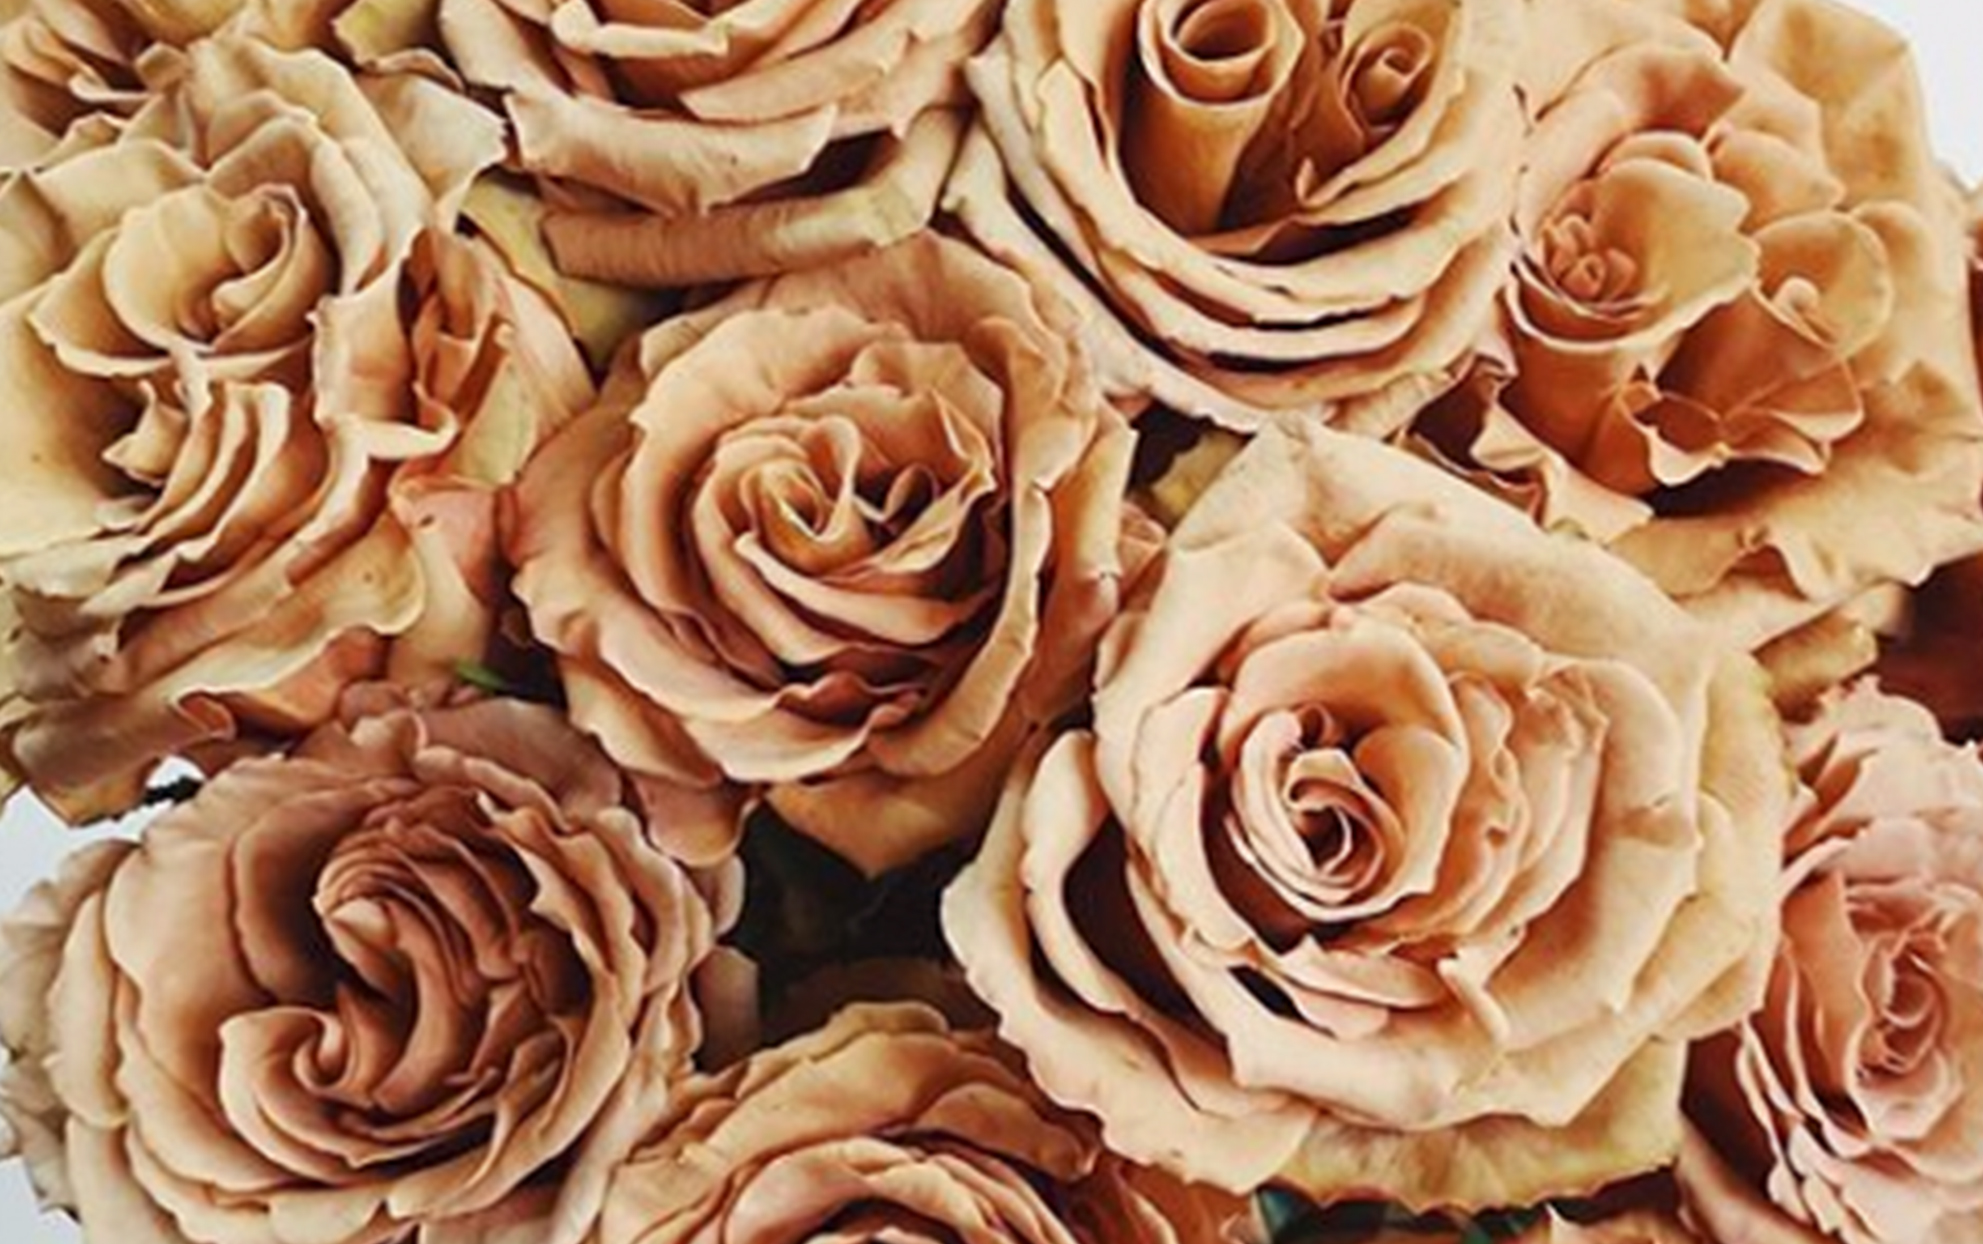 'Toffee' Roses Are So Popular, Some Florists Can Barely Keep Them in Stock